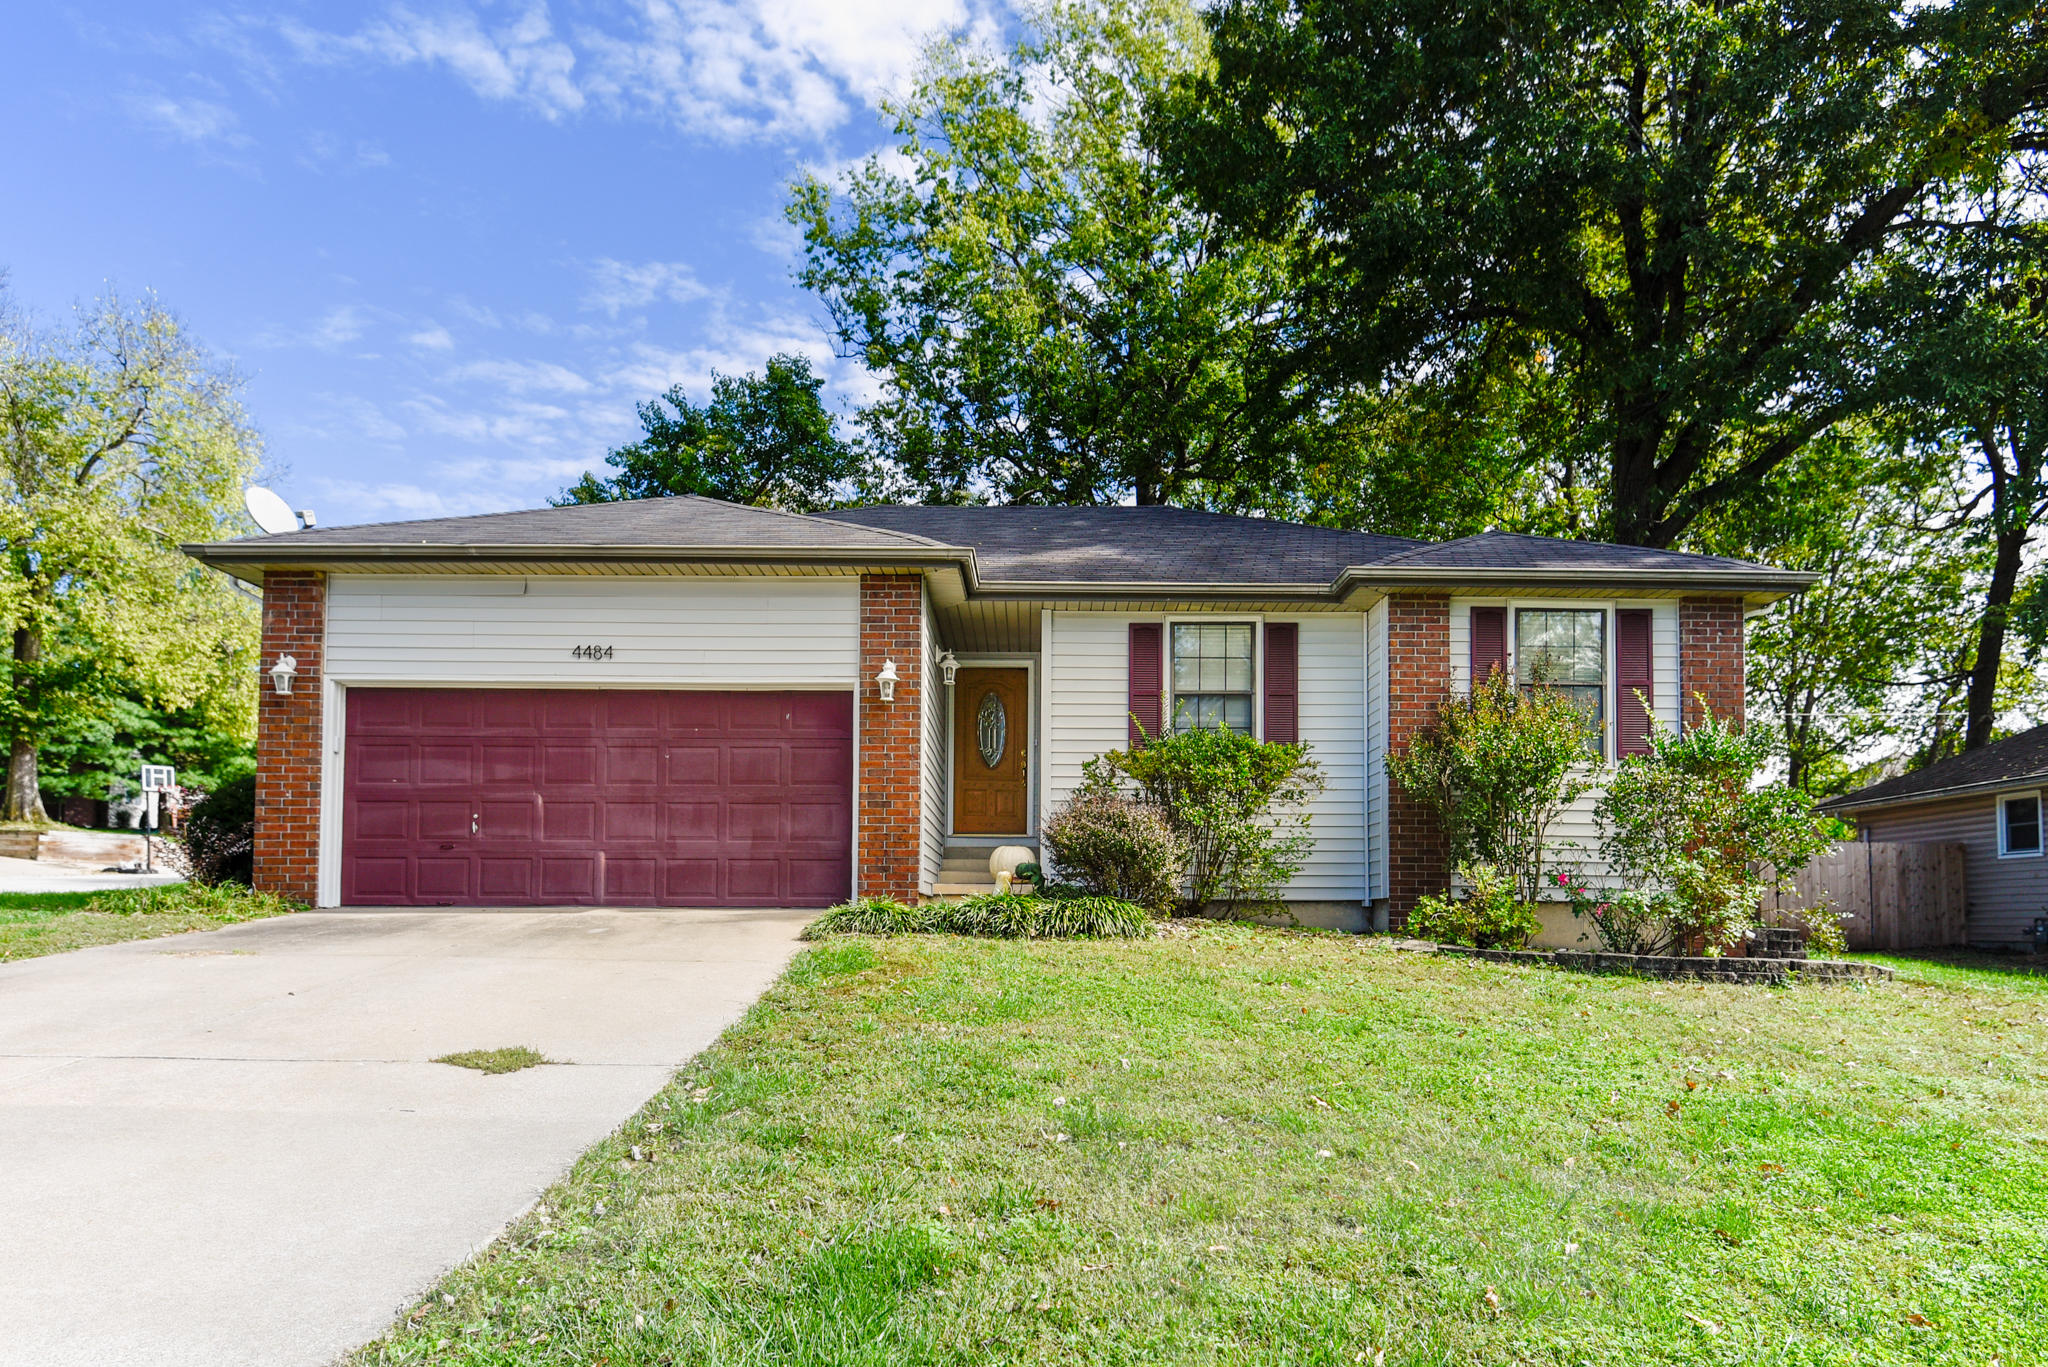 4484 South Leroy Avenue Springfield, MO 65810